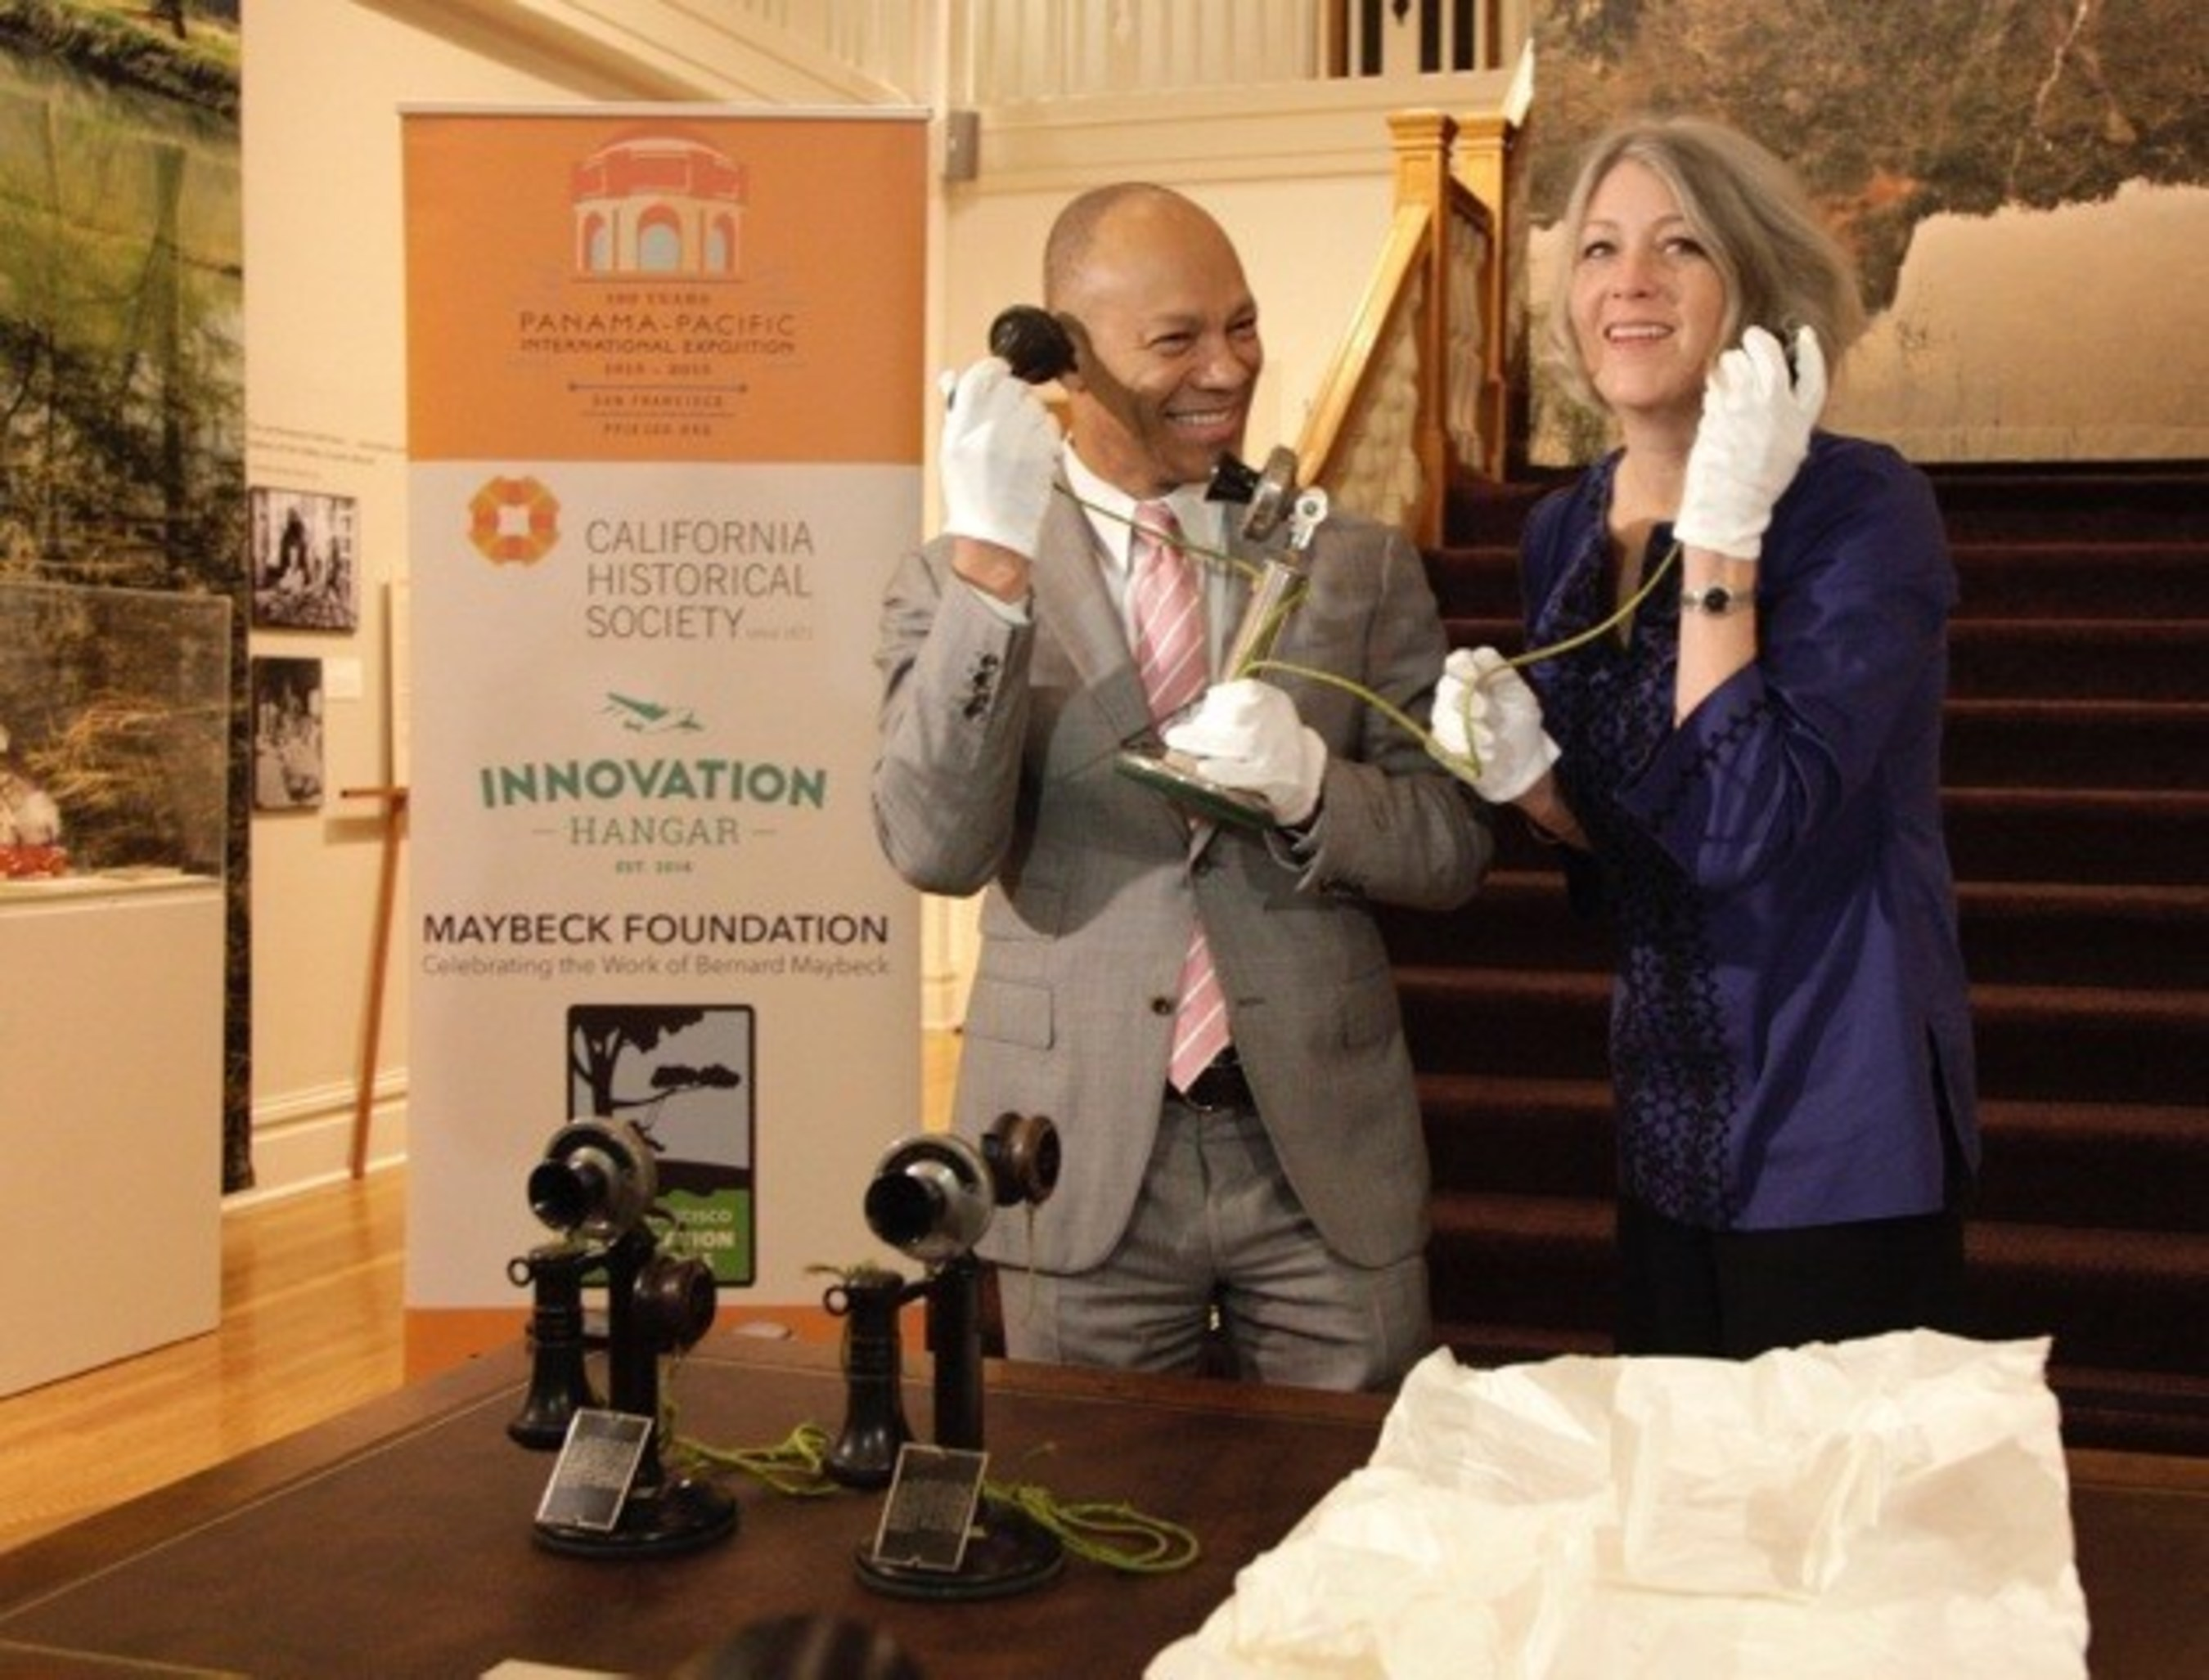 "Ken McNeely, President of AT&T California and Dr. Anthea Hartig, Executive Director of the California Historical Society, unpack the original phone used by President Woodrow Wilson to make the first-ever transcontinental phone call on January 25, 1915. The four original phones used for the call were unveiled today and will be on display at the California Historical Society as part of its PPIE100 ""City Rising: San Francisco and the 1915 World Fair"" exhibition at 678 Mission Street which officially opens on February 22nd in San Francisco. City Rising, will also feature a sister exhibition at the Palace of Fine Arts which opens February 21st as part of a city-wide celebration and community day at the Palace that marks the 100th anniversary of the 1915 World's Fair. Photo Source: Michael Tweed"